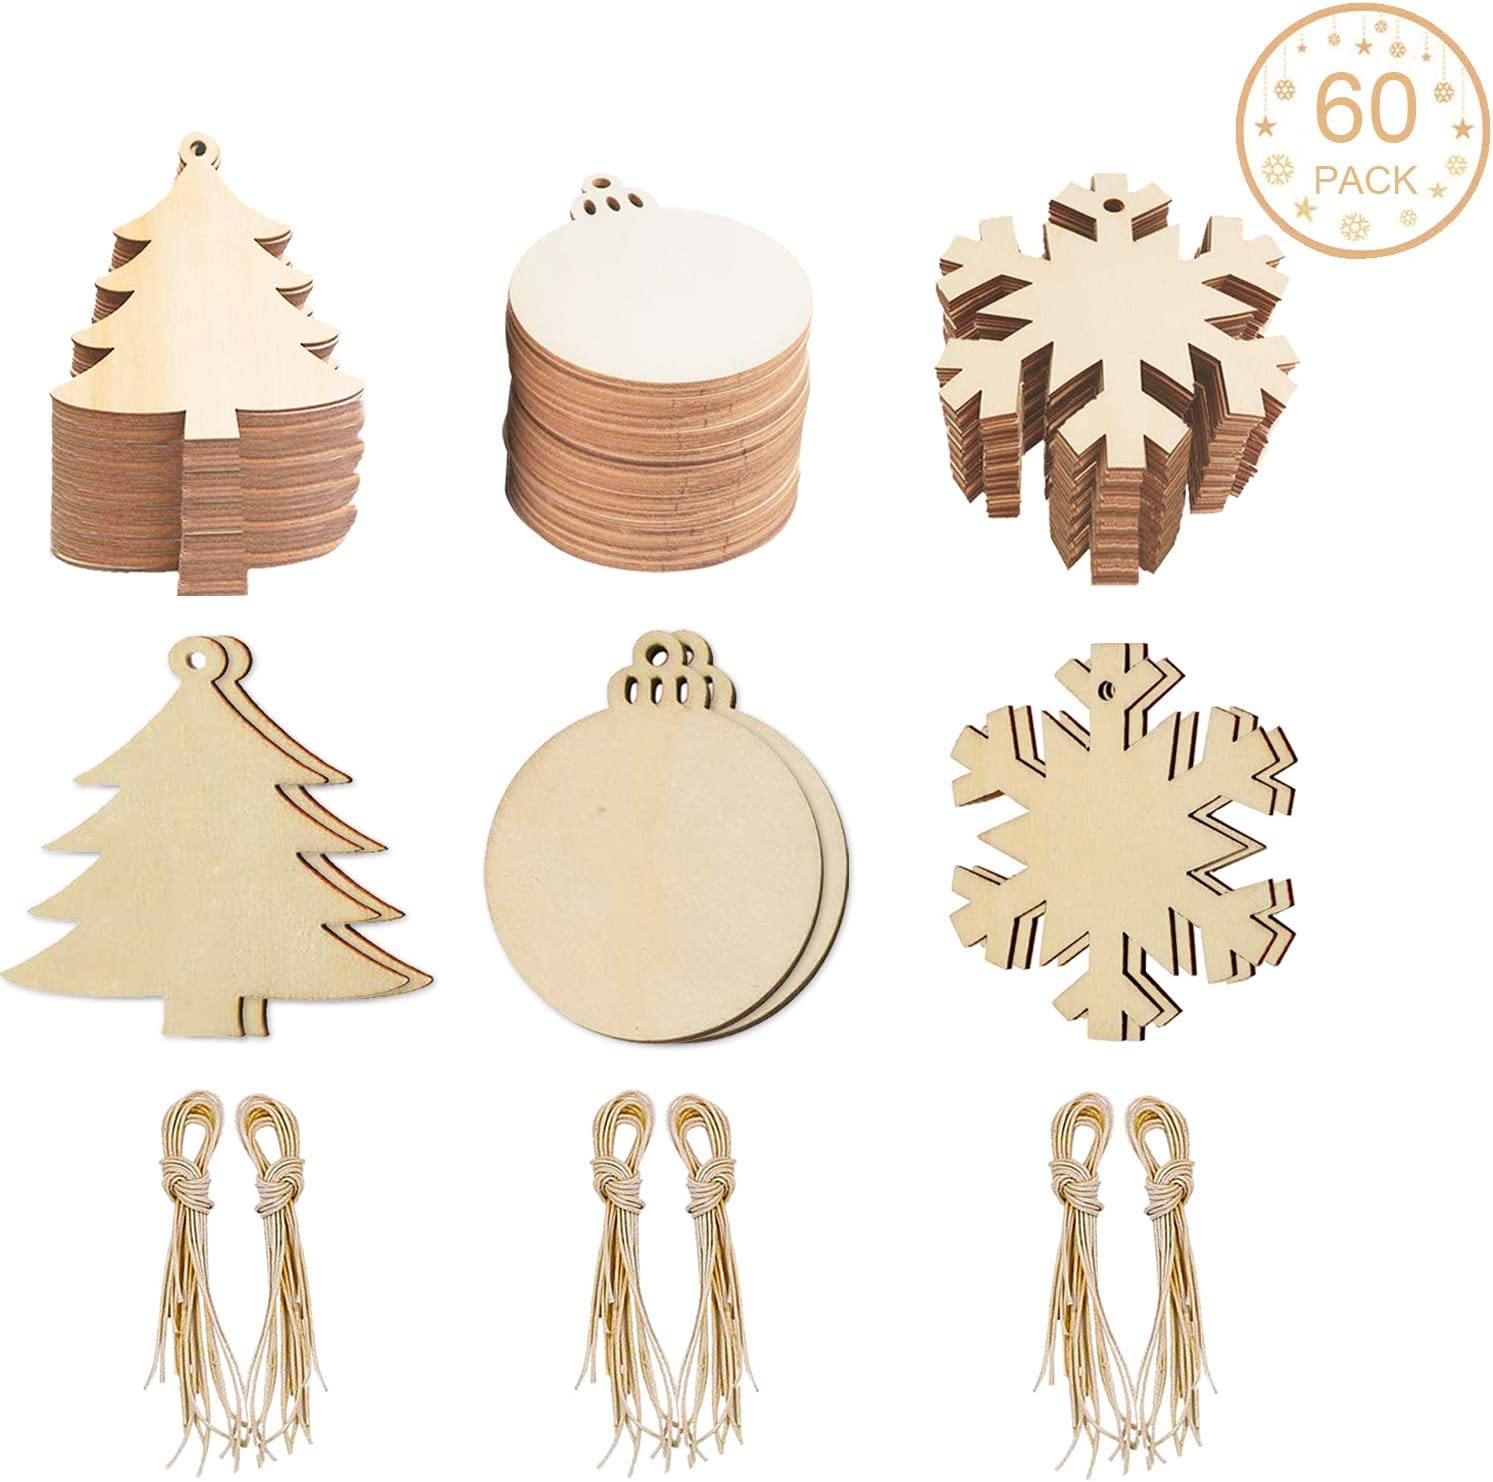 60 Pack Wooden Christmas Hanging Ornaments Unfinished SINGARE Christmas Tree Snowflake Round Shaped Wood Slices w Holes for DIY Crafts Holiday